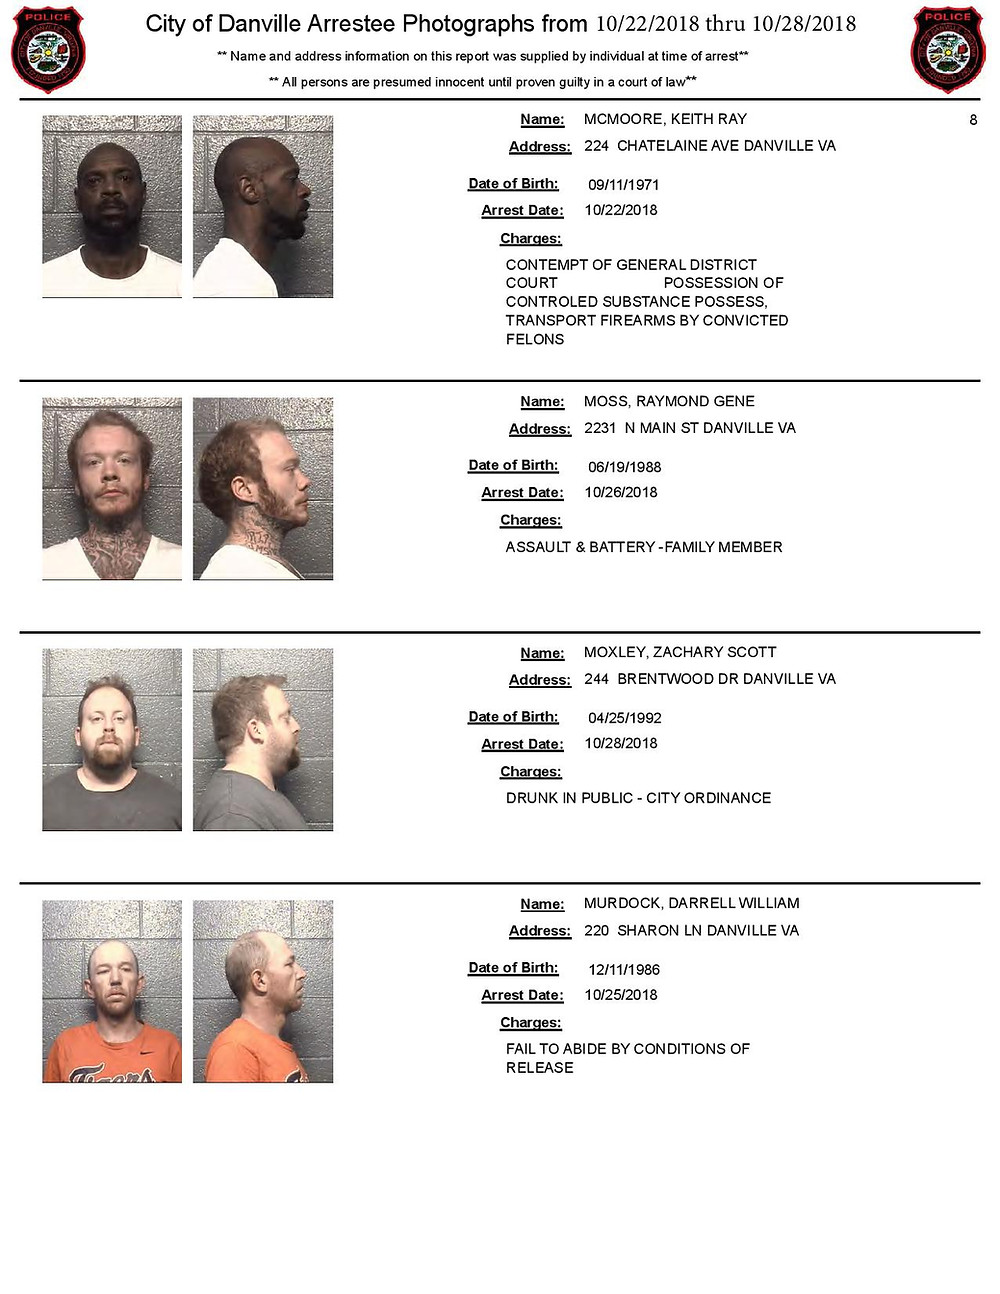 Arrest Photos in Danville VA